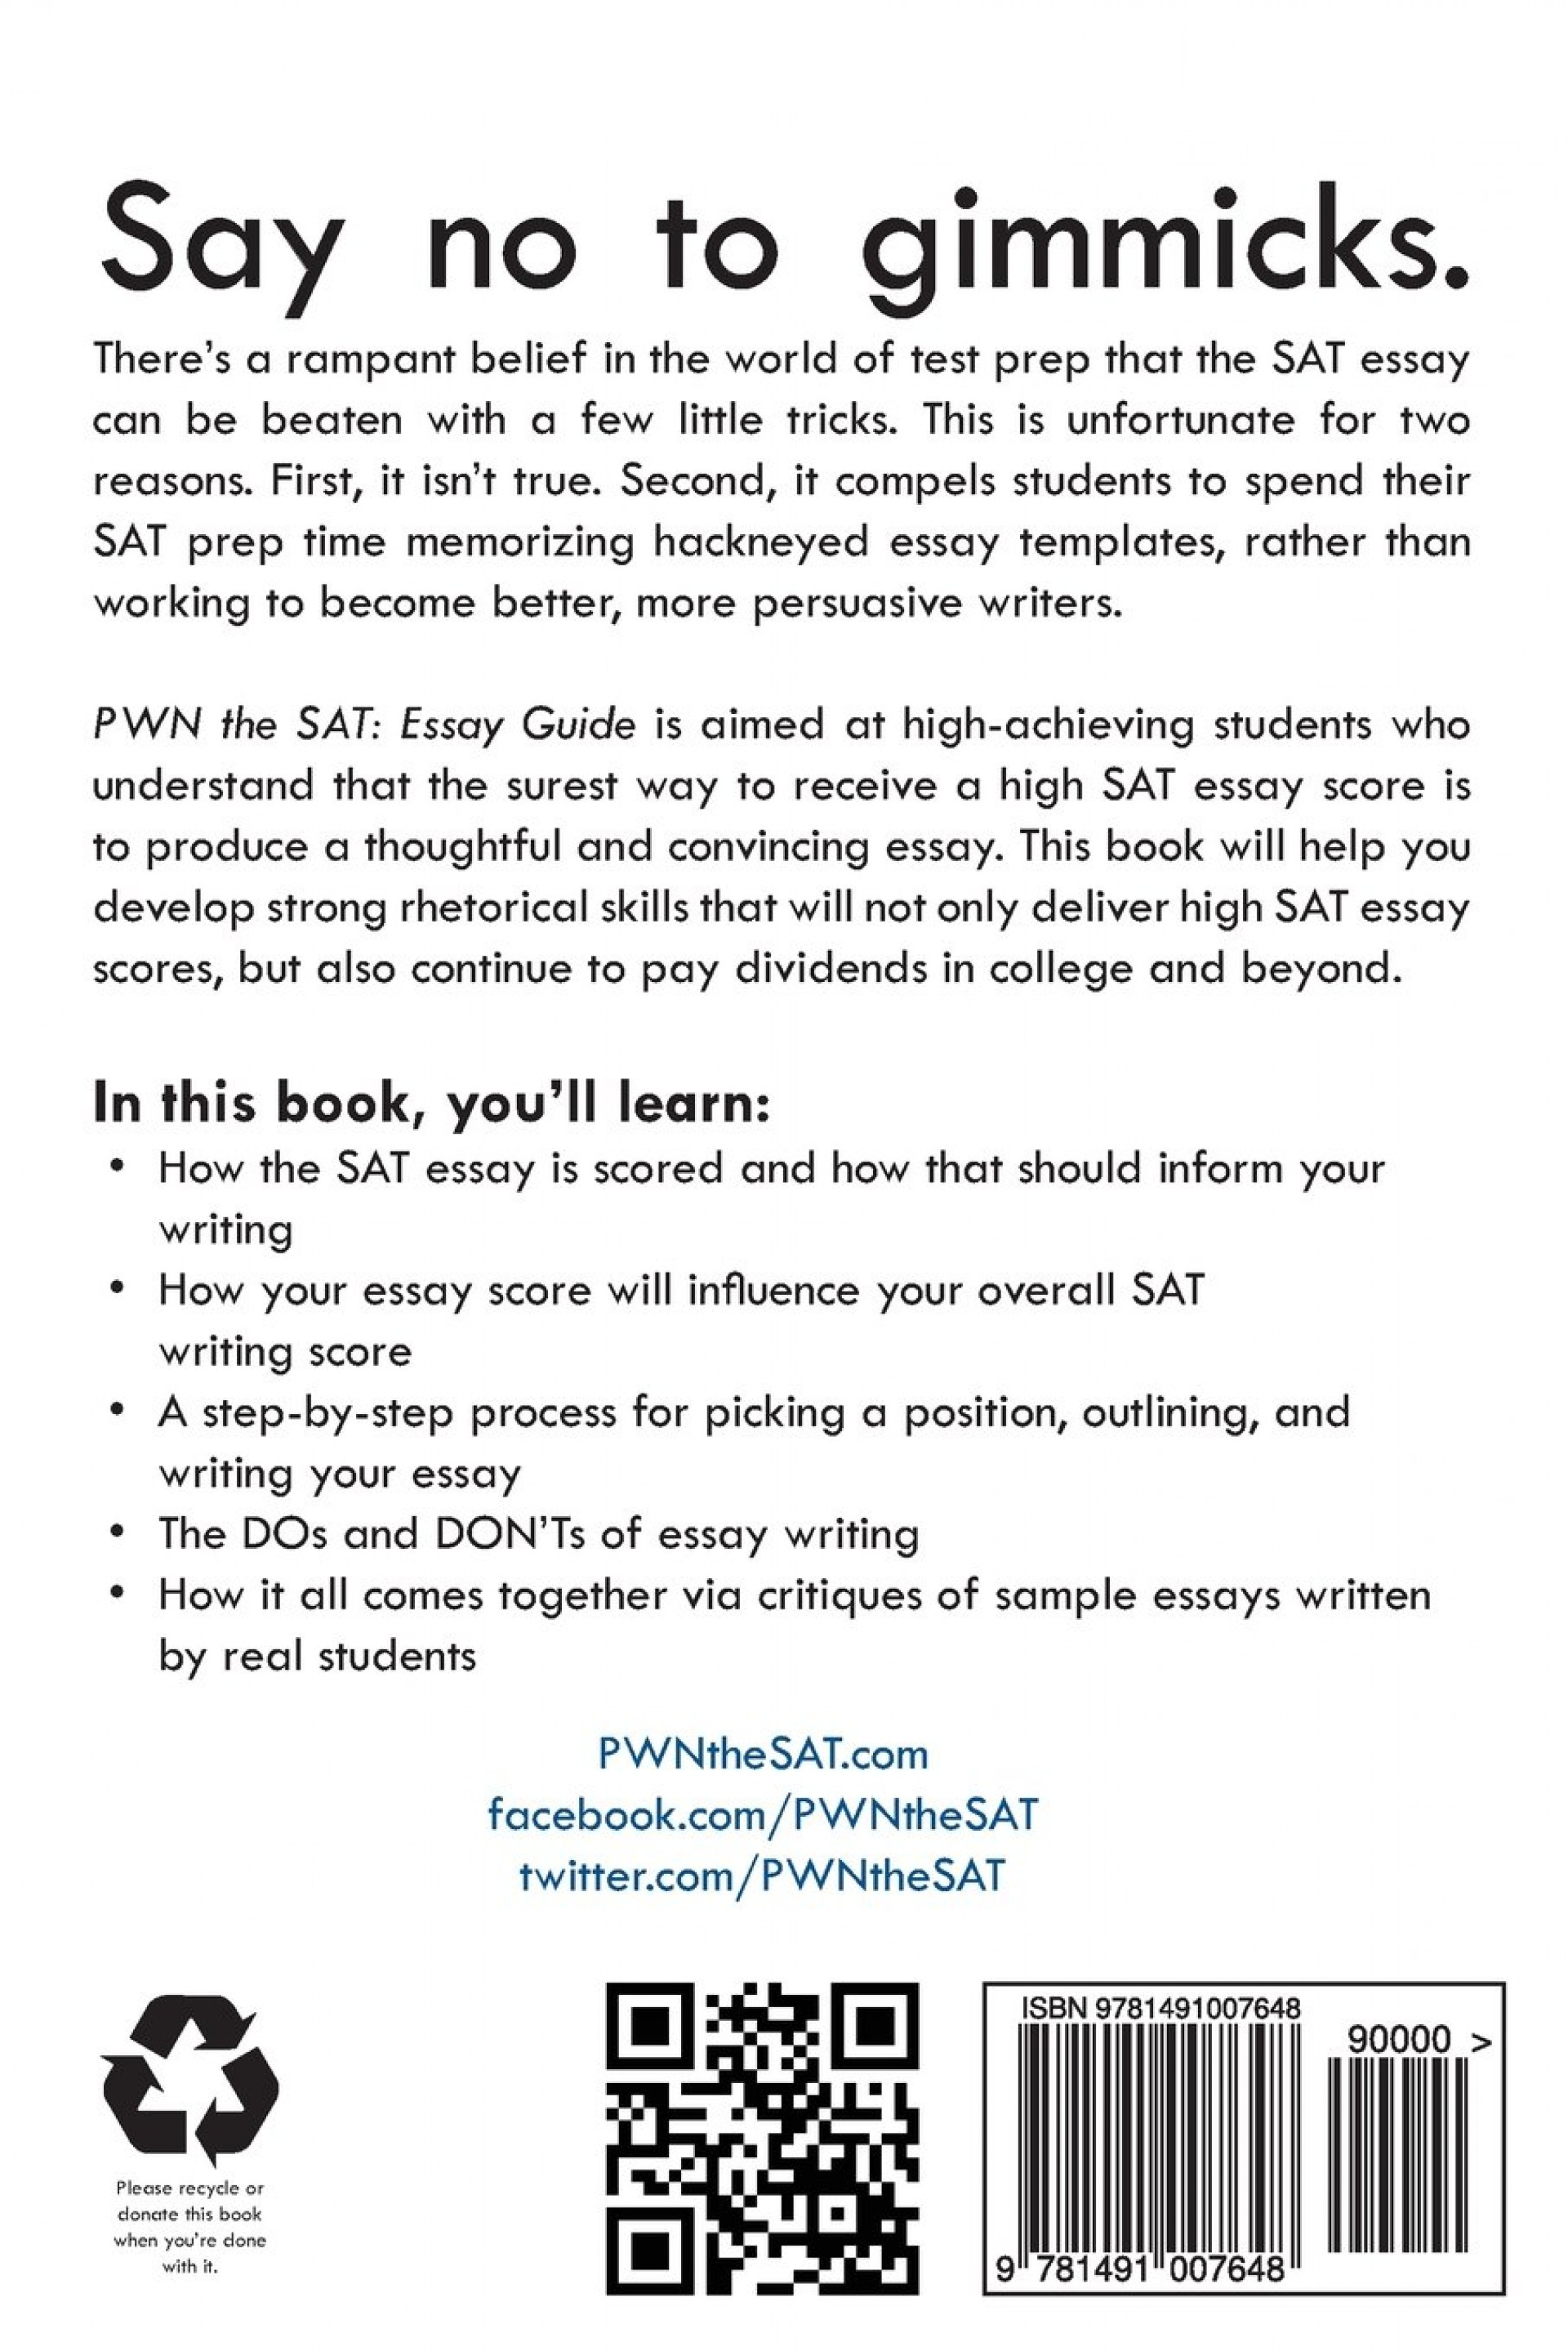 009 Sat Essay 712bcqjf85sl Rare Writing Tips Pdf Topics Average Score For Ivy League 1920